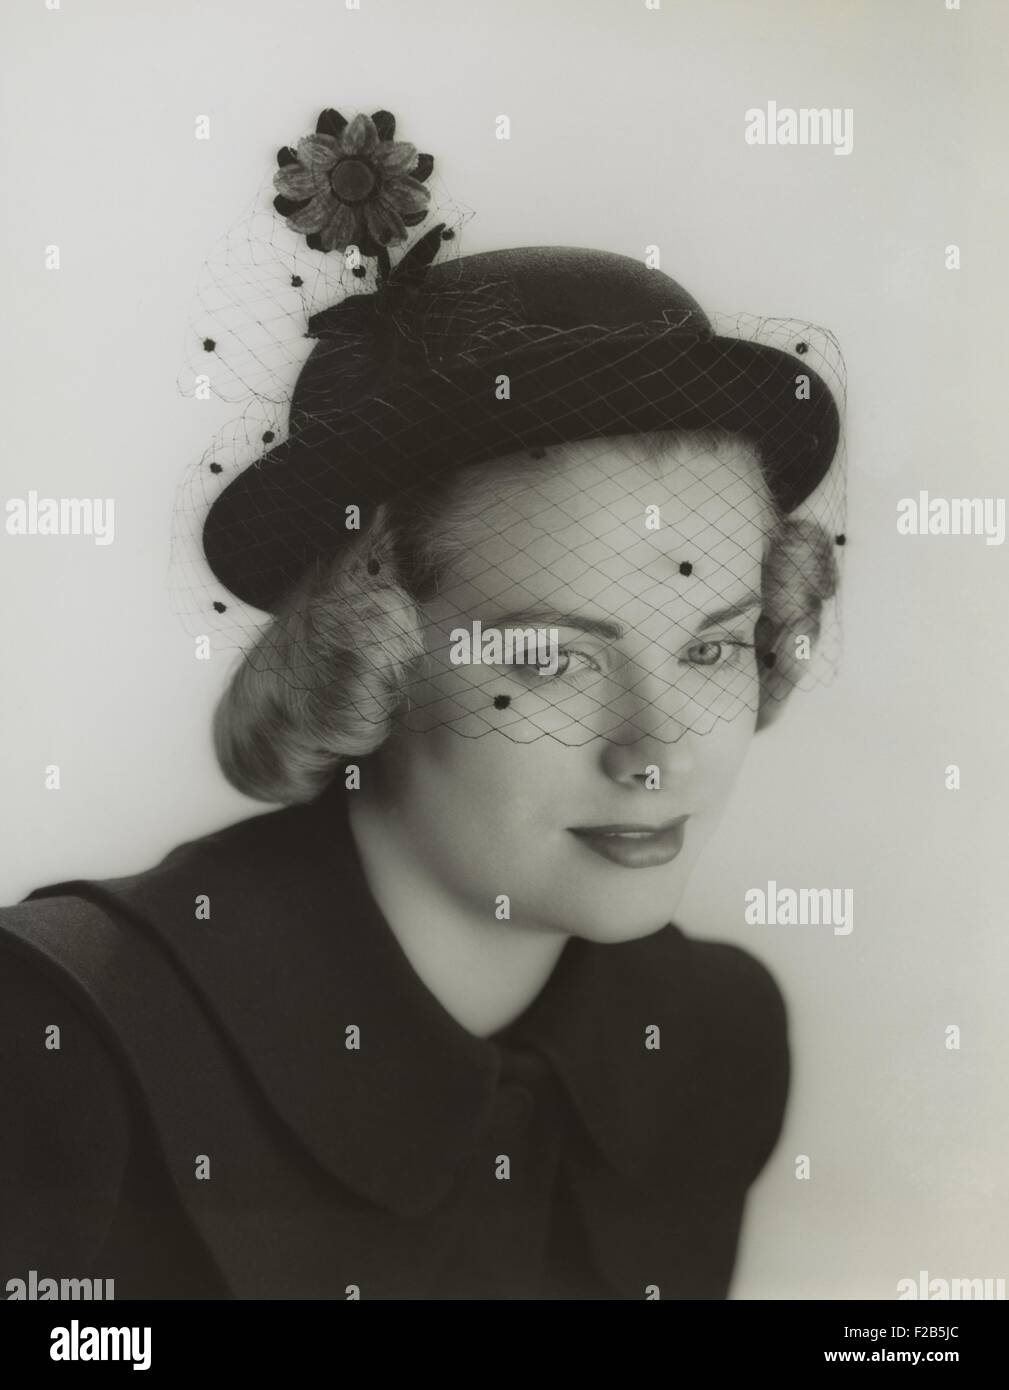 Grace Kelly modeling a veiled hat at age 19 in 1949. She was studying at the American Academy of Dramatic Arts in - Stock Image